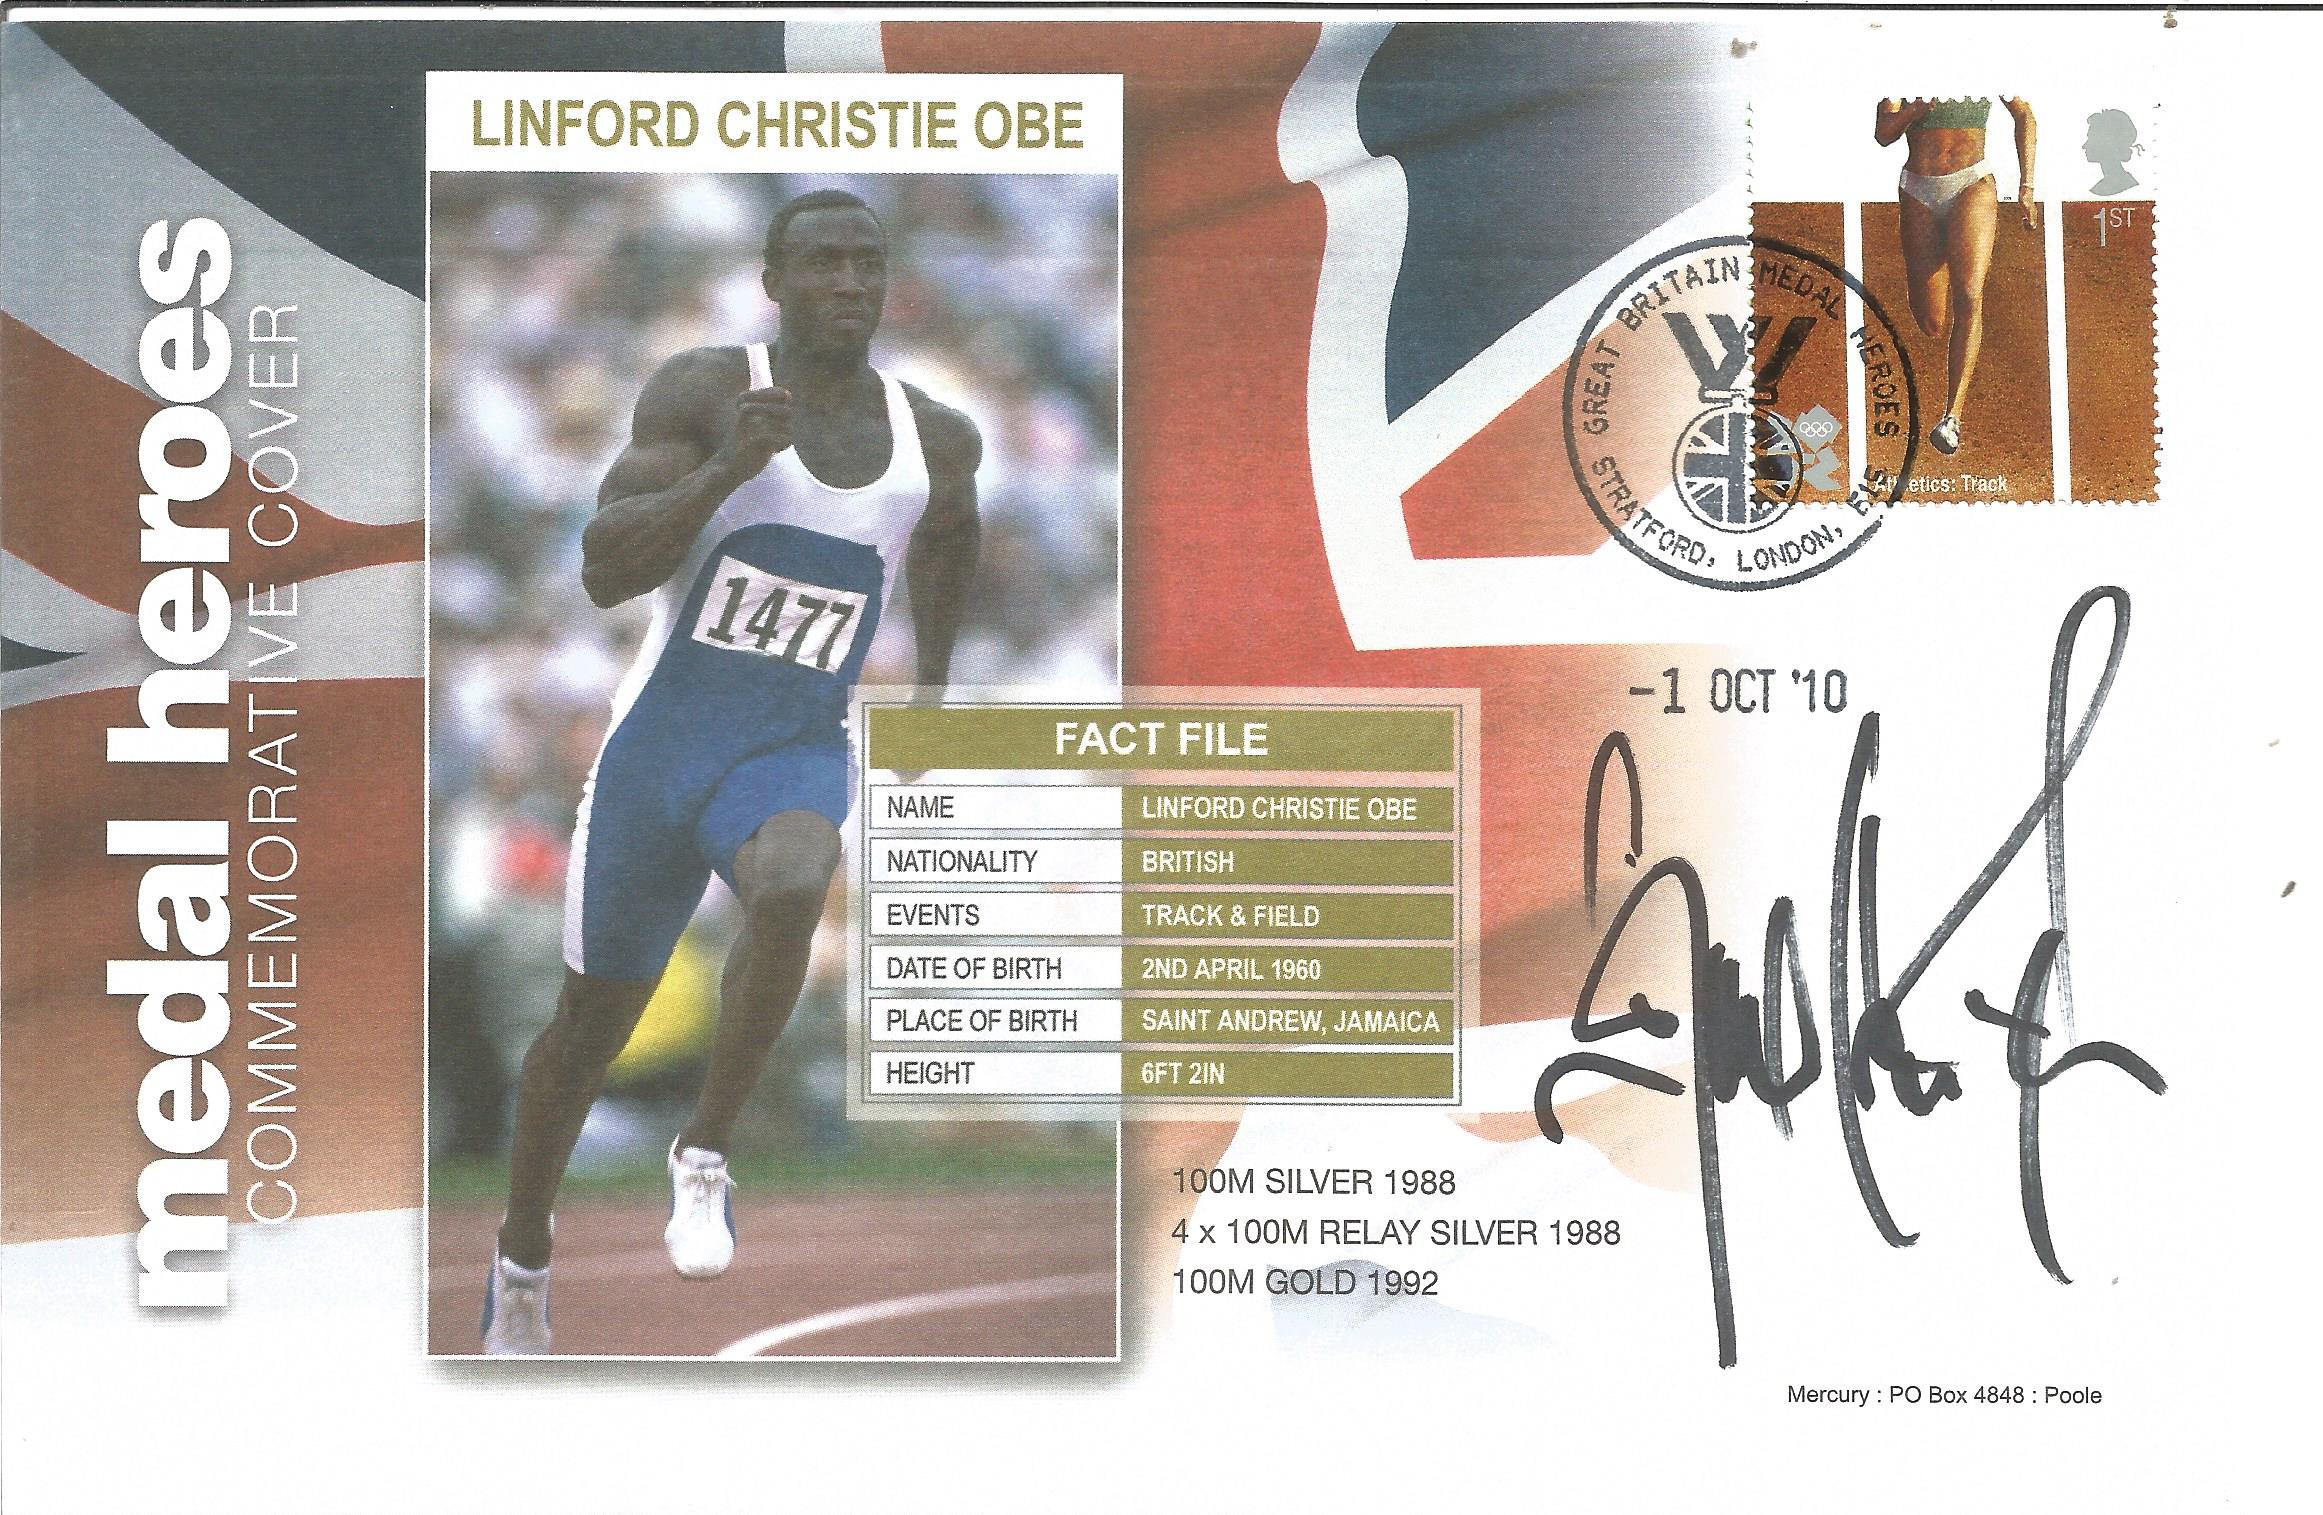 Olympic Medal winner Linford Christie FDC for medal heroes in Honor of Linford Christie and his